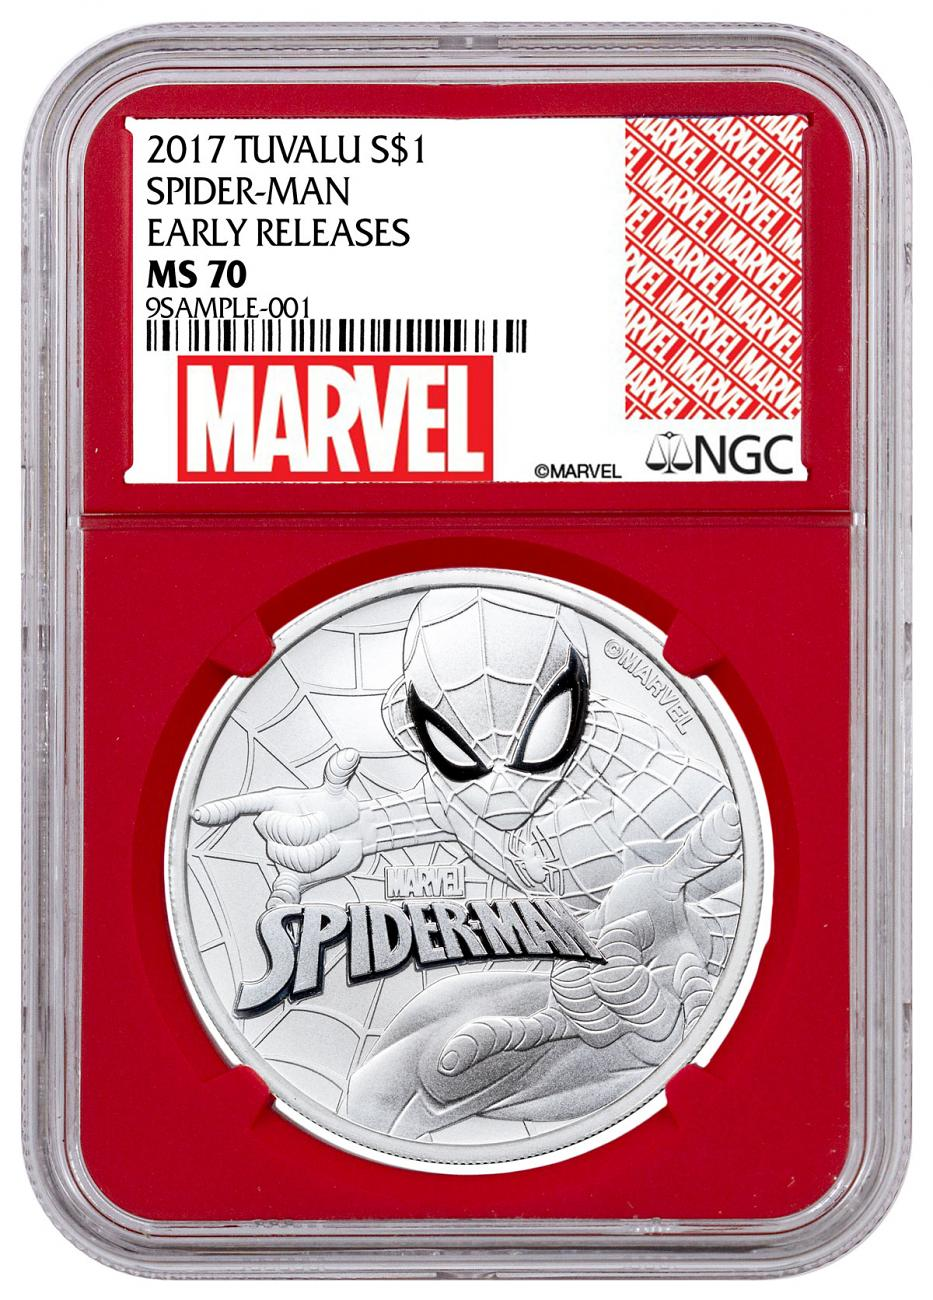 2017 Tuvalu Spider-Man 1 oz Silver Marvel Series $1 Coin NGC MS70 ER Red Core Holder Exclusive Marvel Label